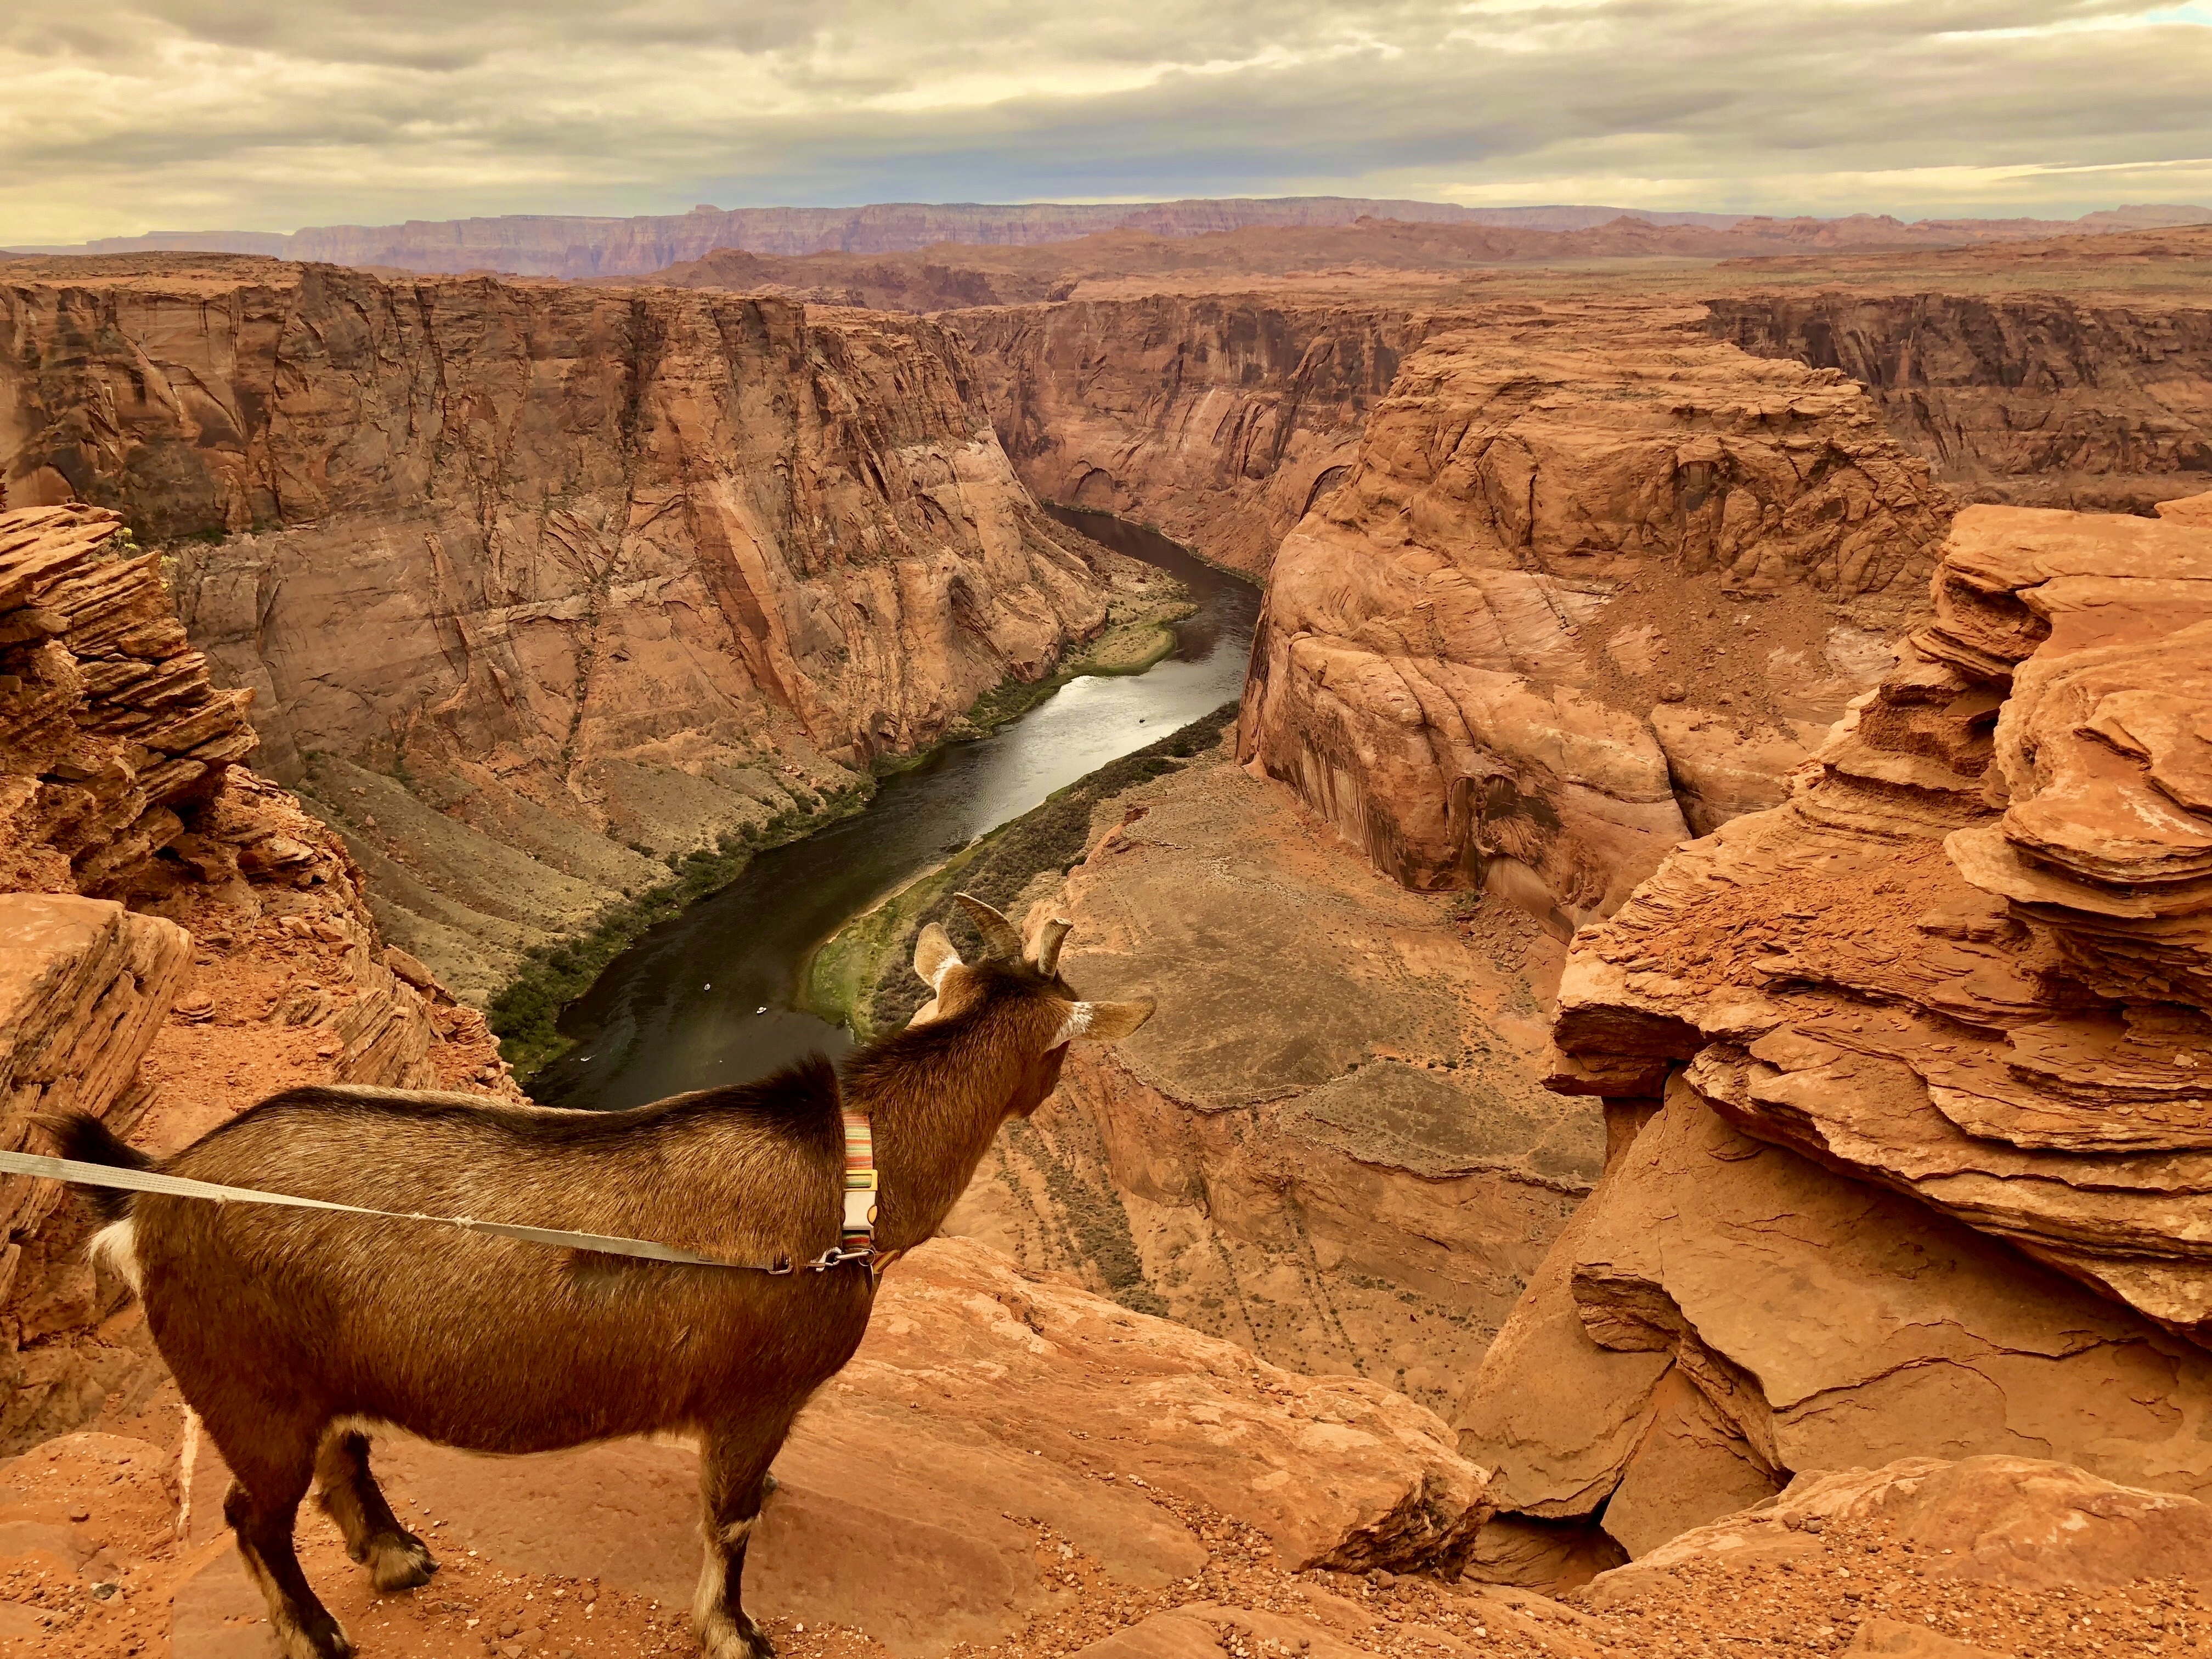 A goat overlooking the Colorado River